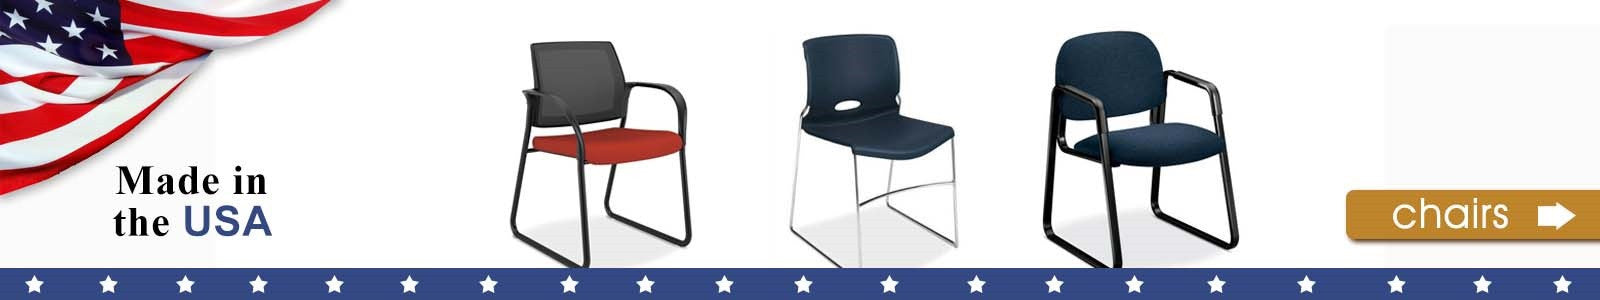 HON Seating Options Made in the USA